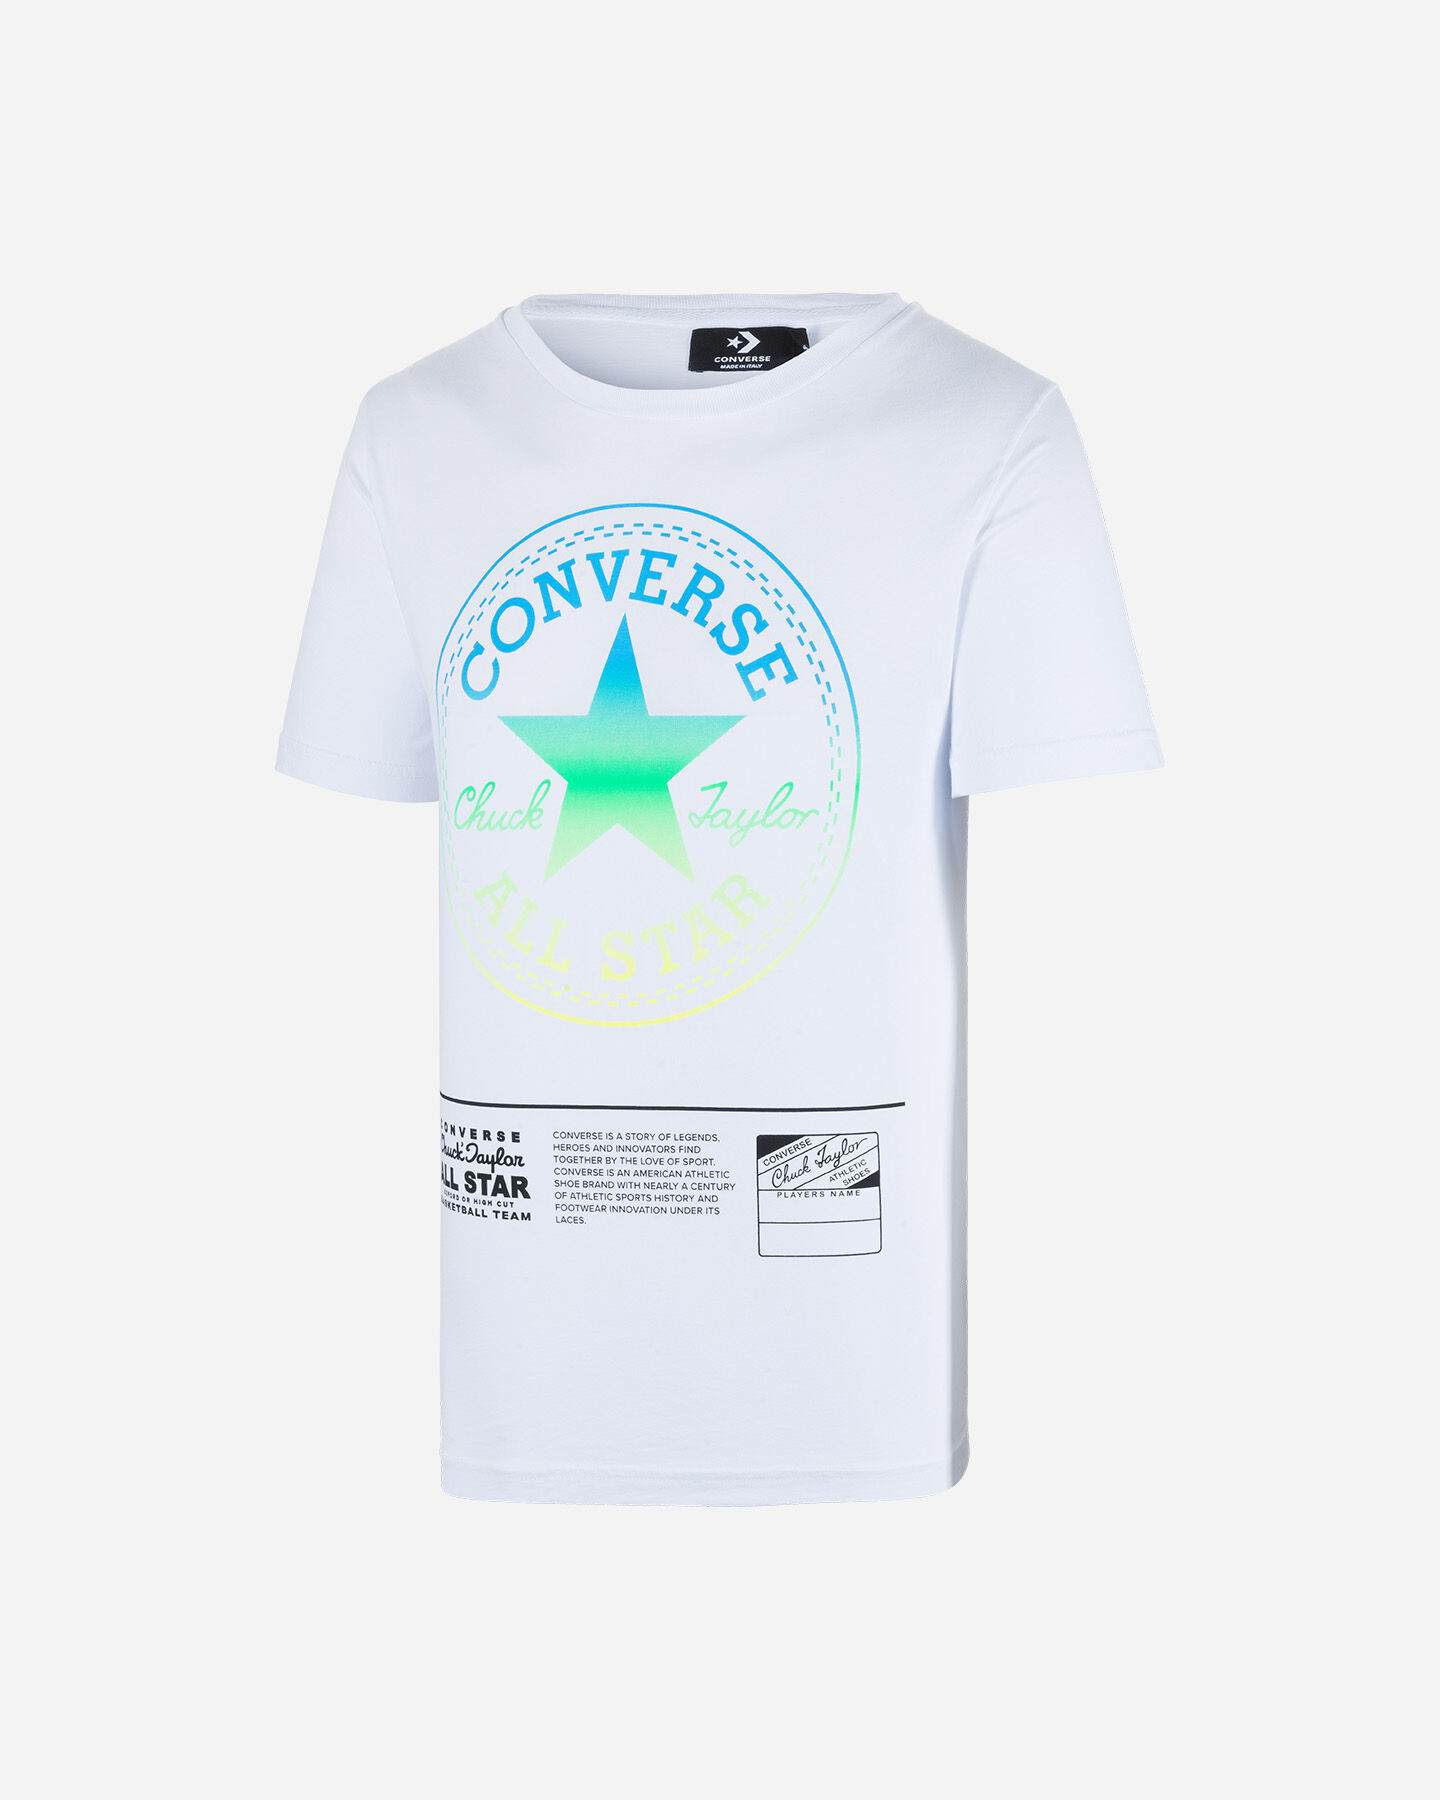 T-Shirt CONVERSE ALL STAR CHUCH TAYLOR LOGO M S5181091 scatto 0